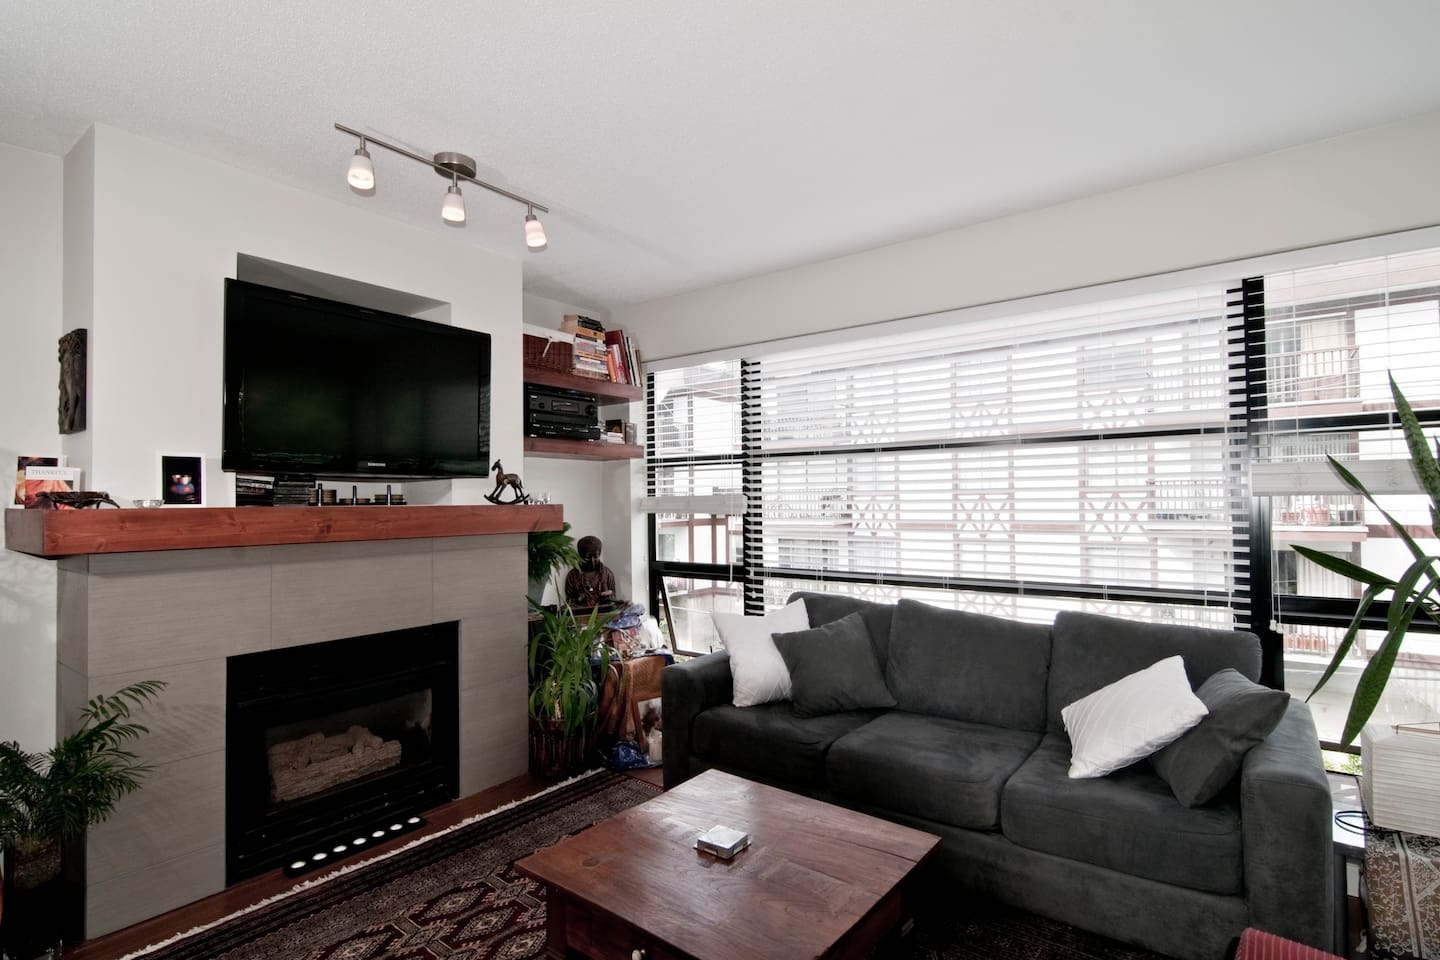 The living room has lots of natural light and 4 different windows to create air flow.